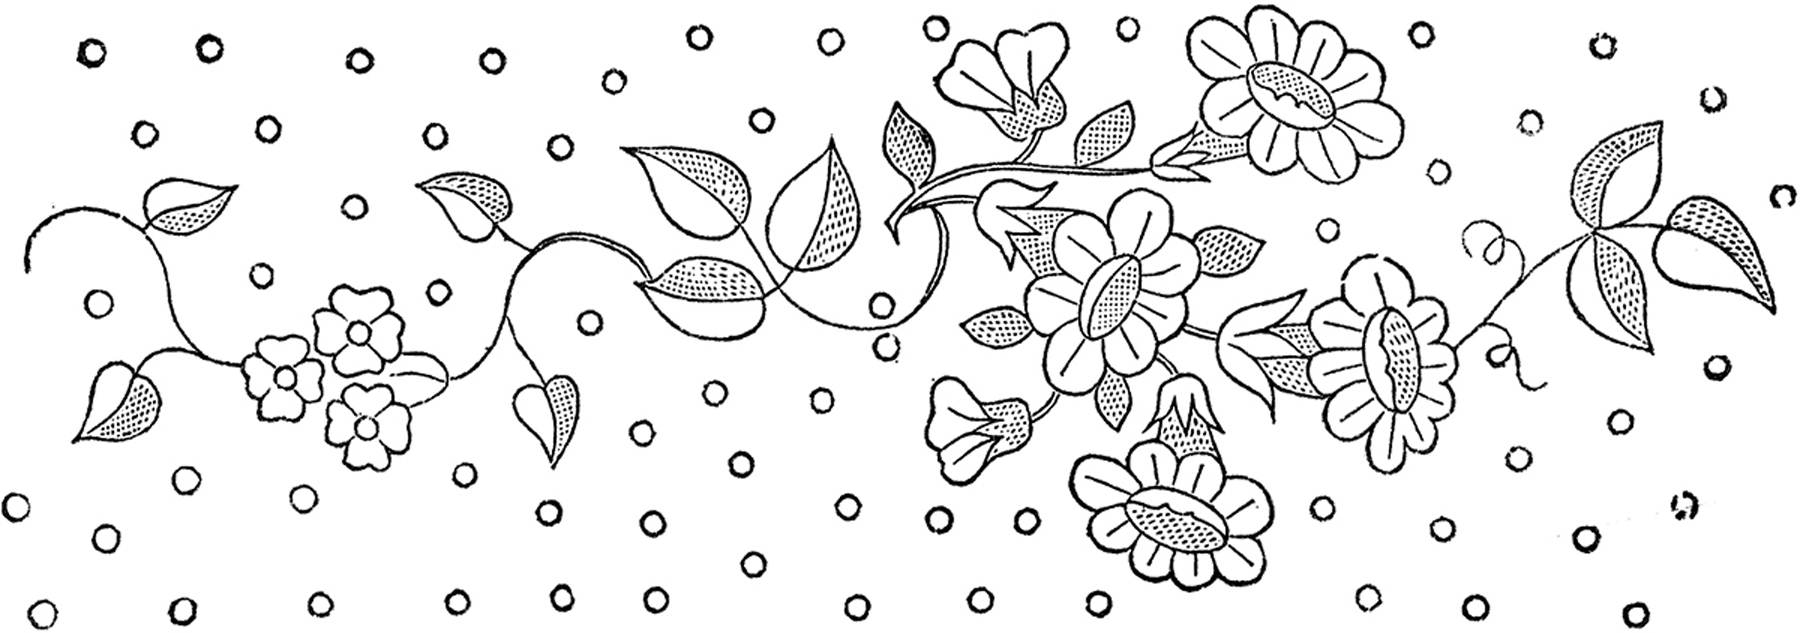 Free Flower Embroidery Patterns Floral Embroidery Patterns Pretty The Graphics Fairy